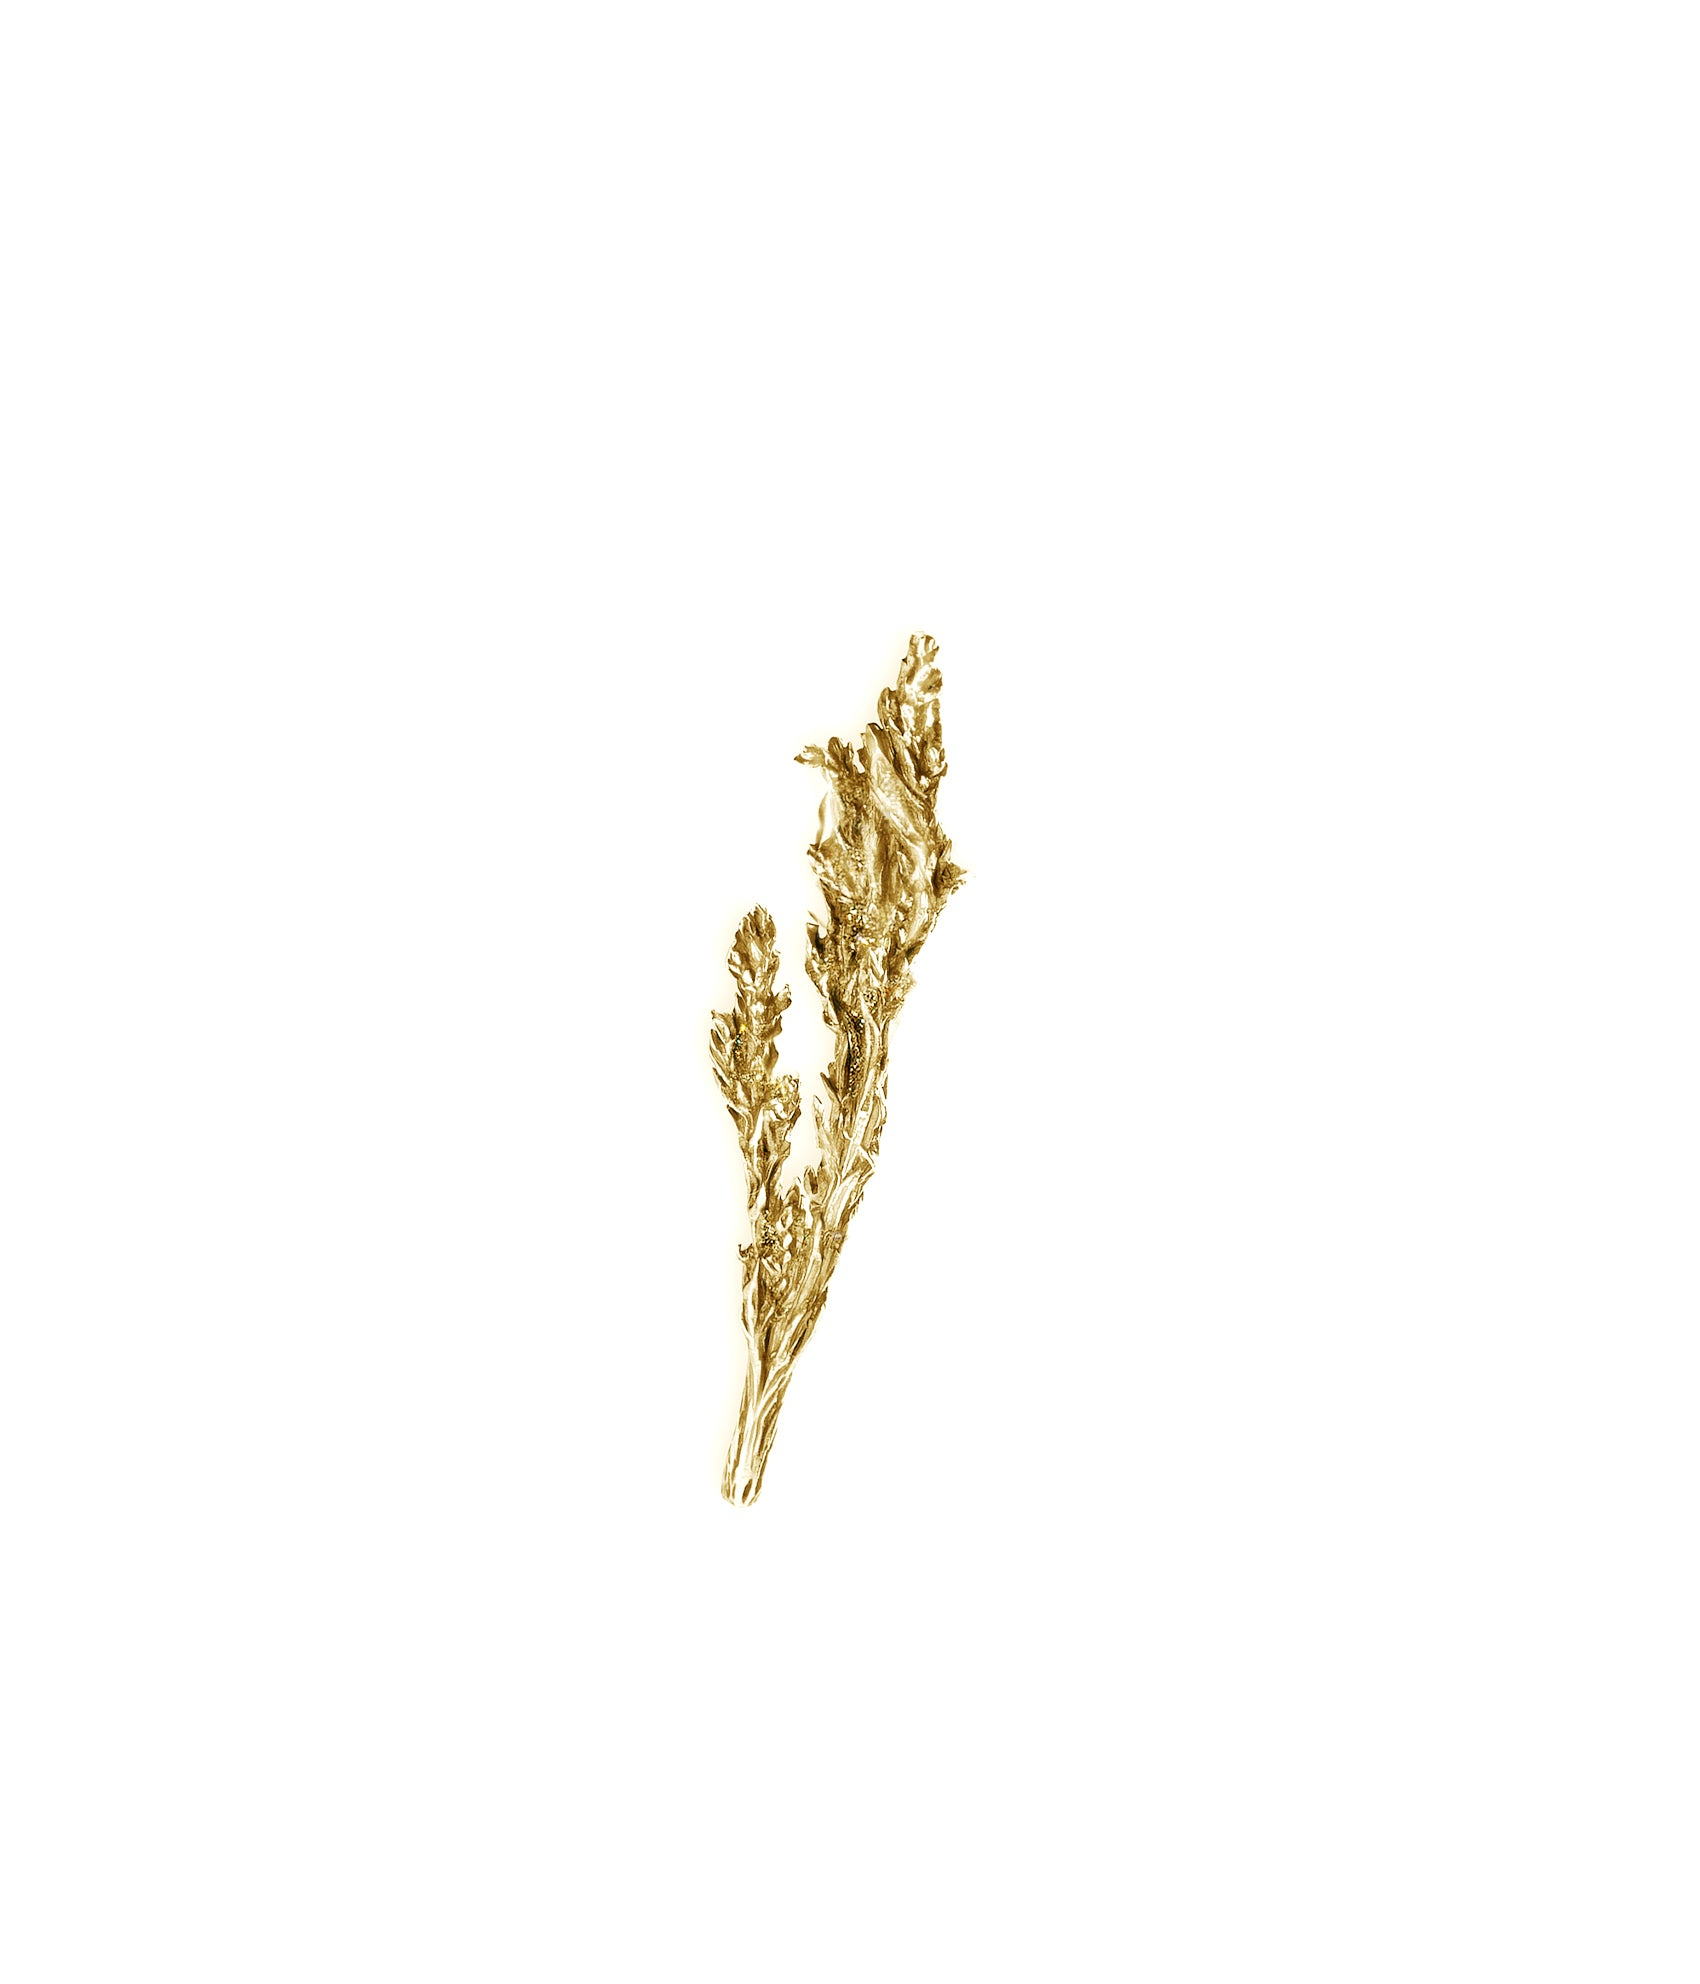 Juniper brooch 18 Kt yellow gold